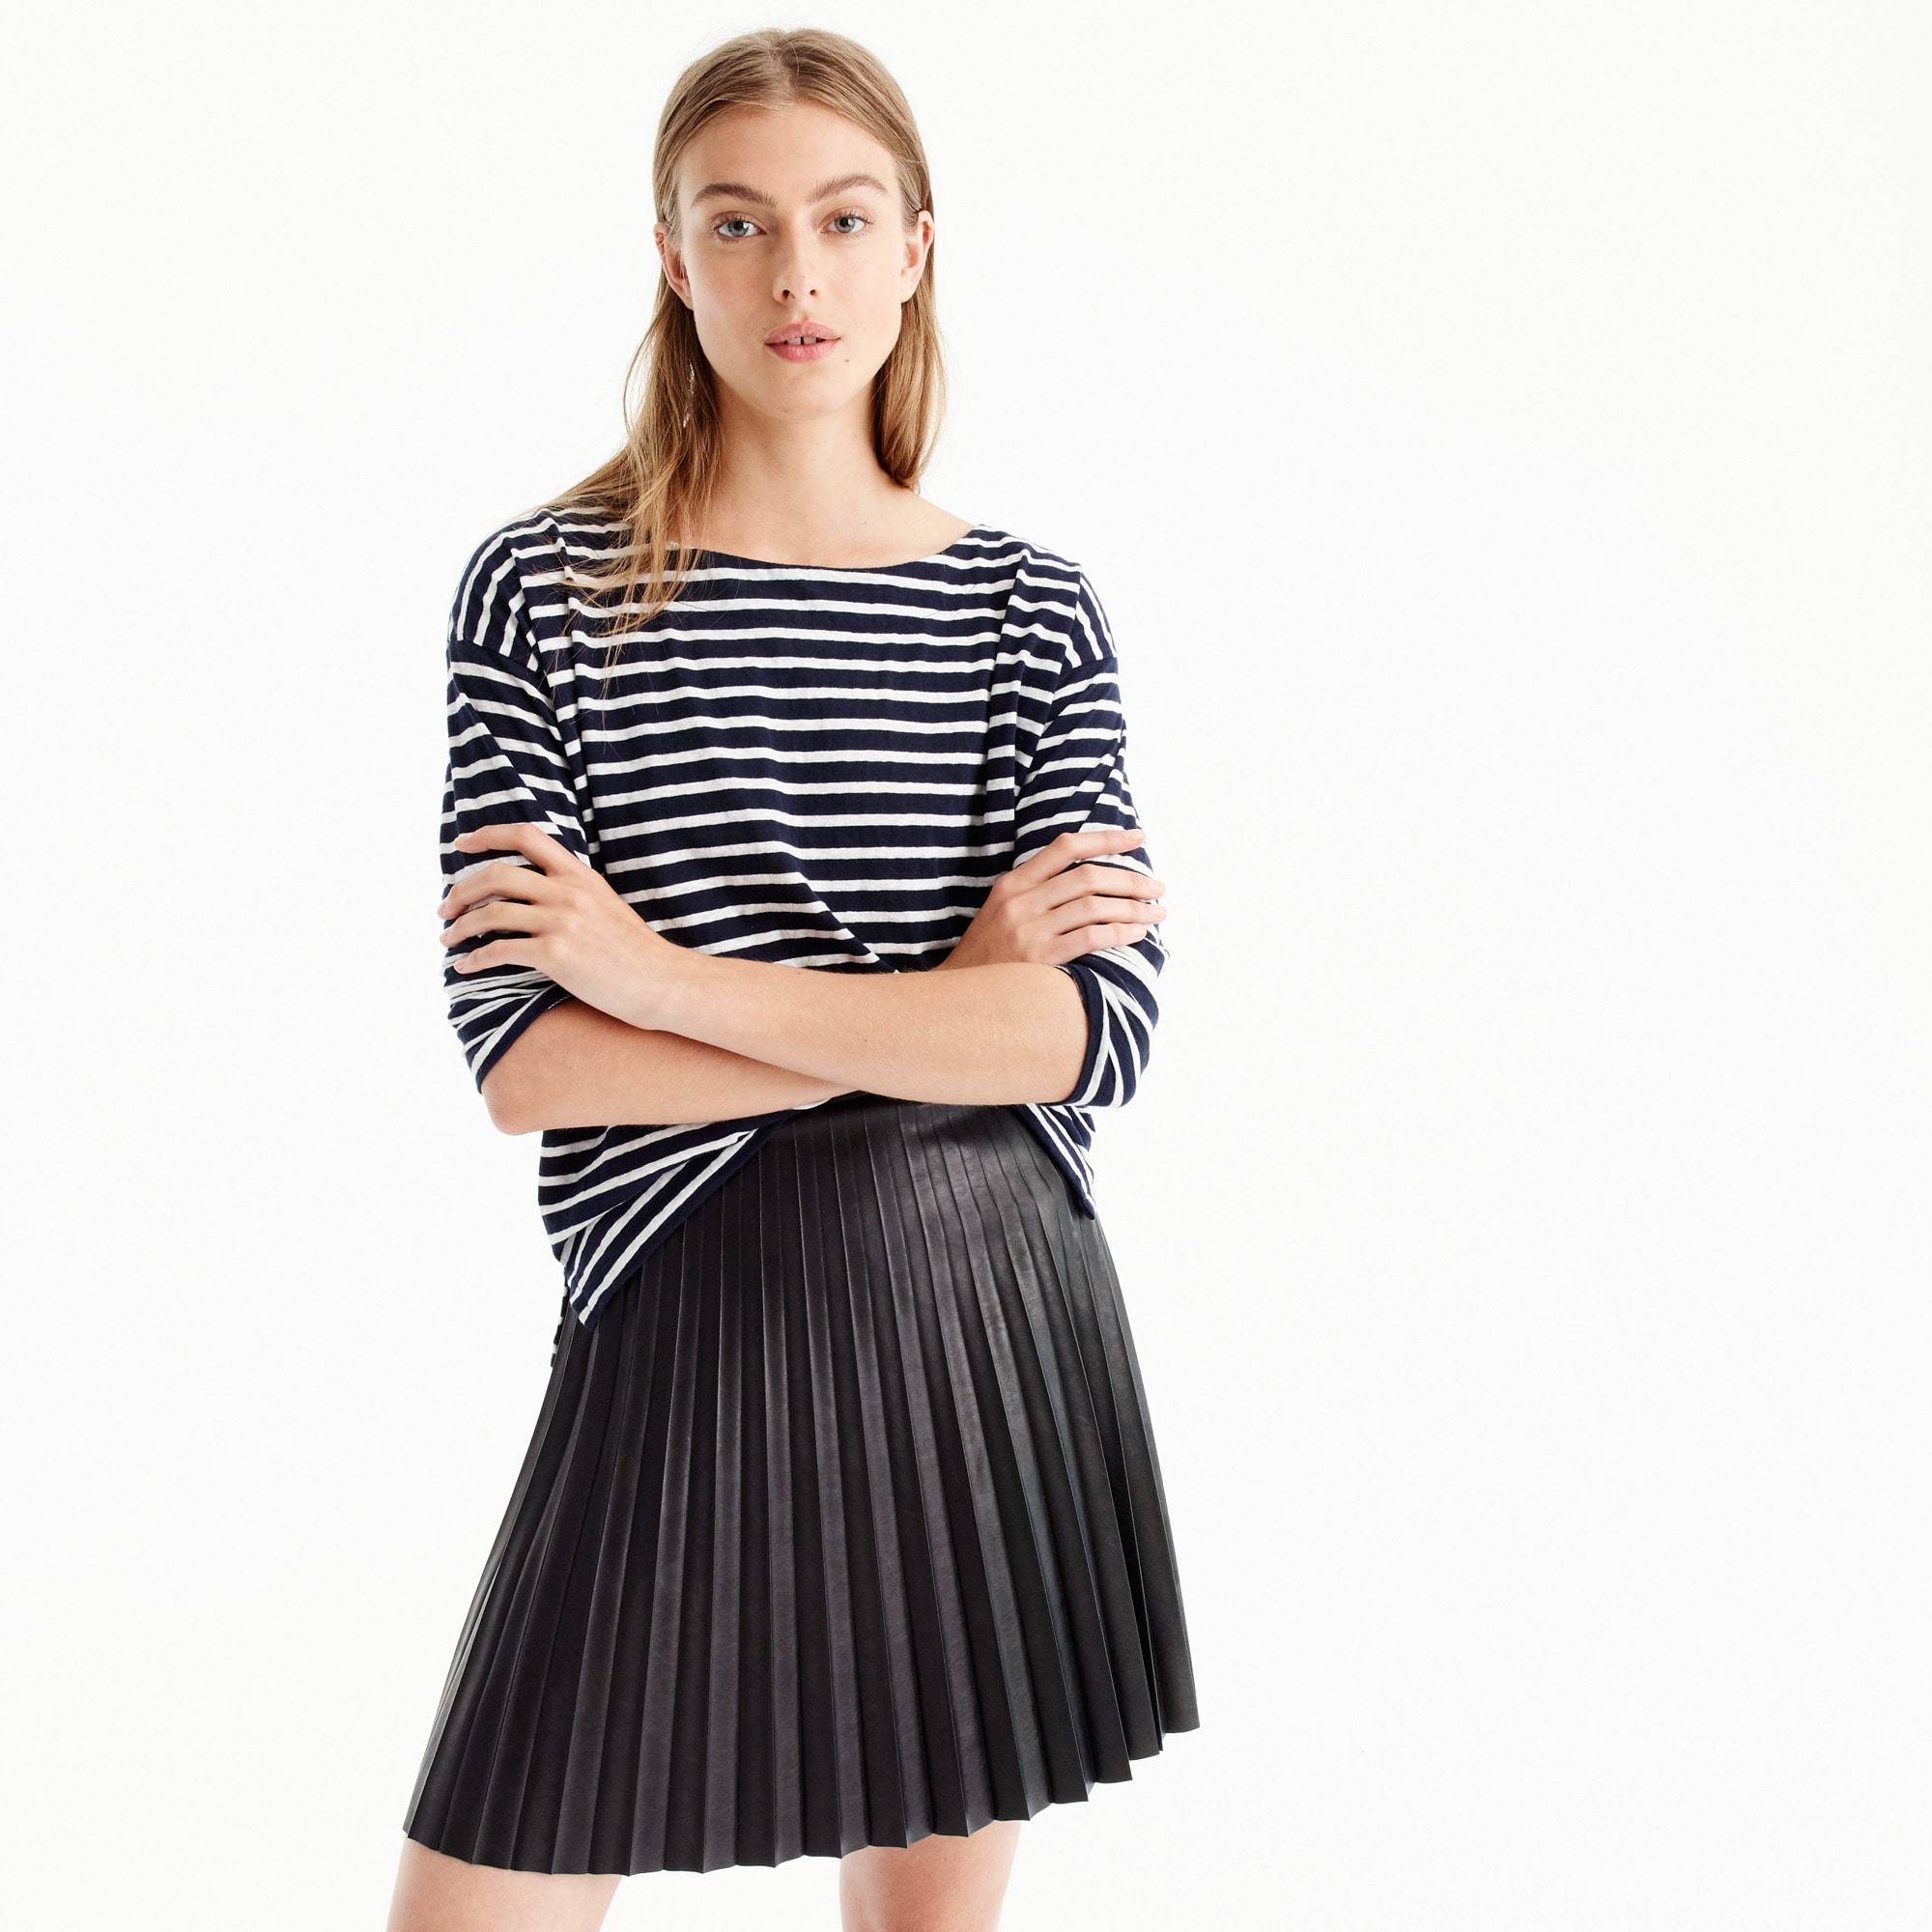 faux-leather pleated mini skirt : women's skirts